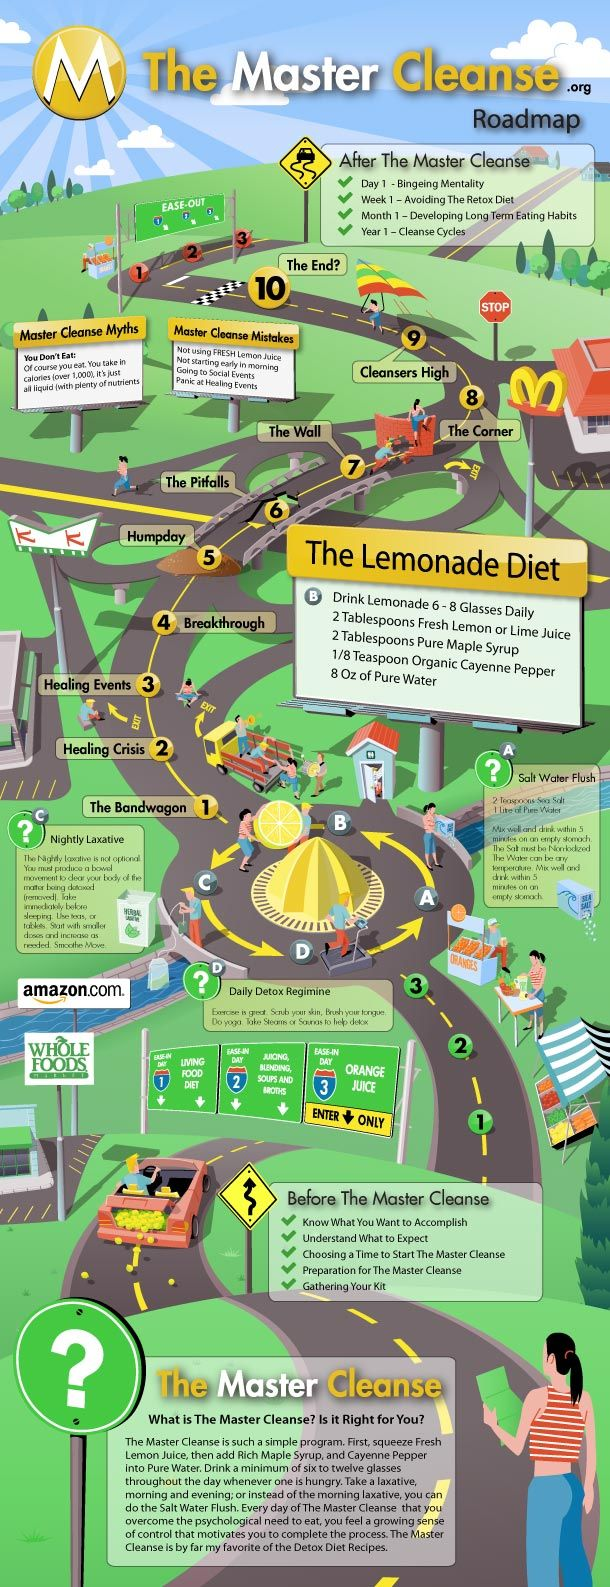 The Master Cleanse Roadmap is your quickstart guide to what The Master Cleanse is, and exactly how to do it. This Roadmap is an Infographic which communicates both visually with graphics and with supporting text. If you like this Inforgraphic or Infographics in general, check out this great website: Cool Inforgraphics You Can Download The …